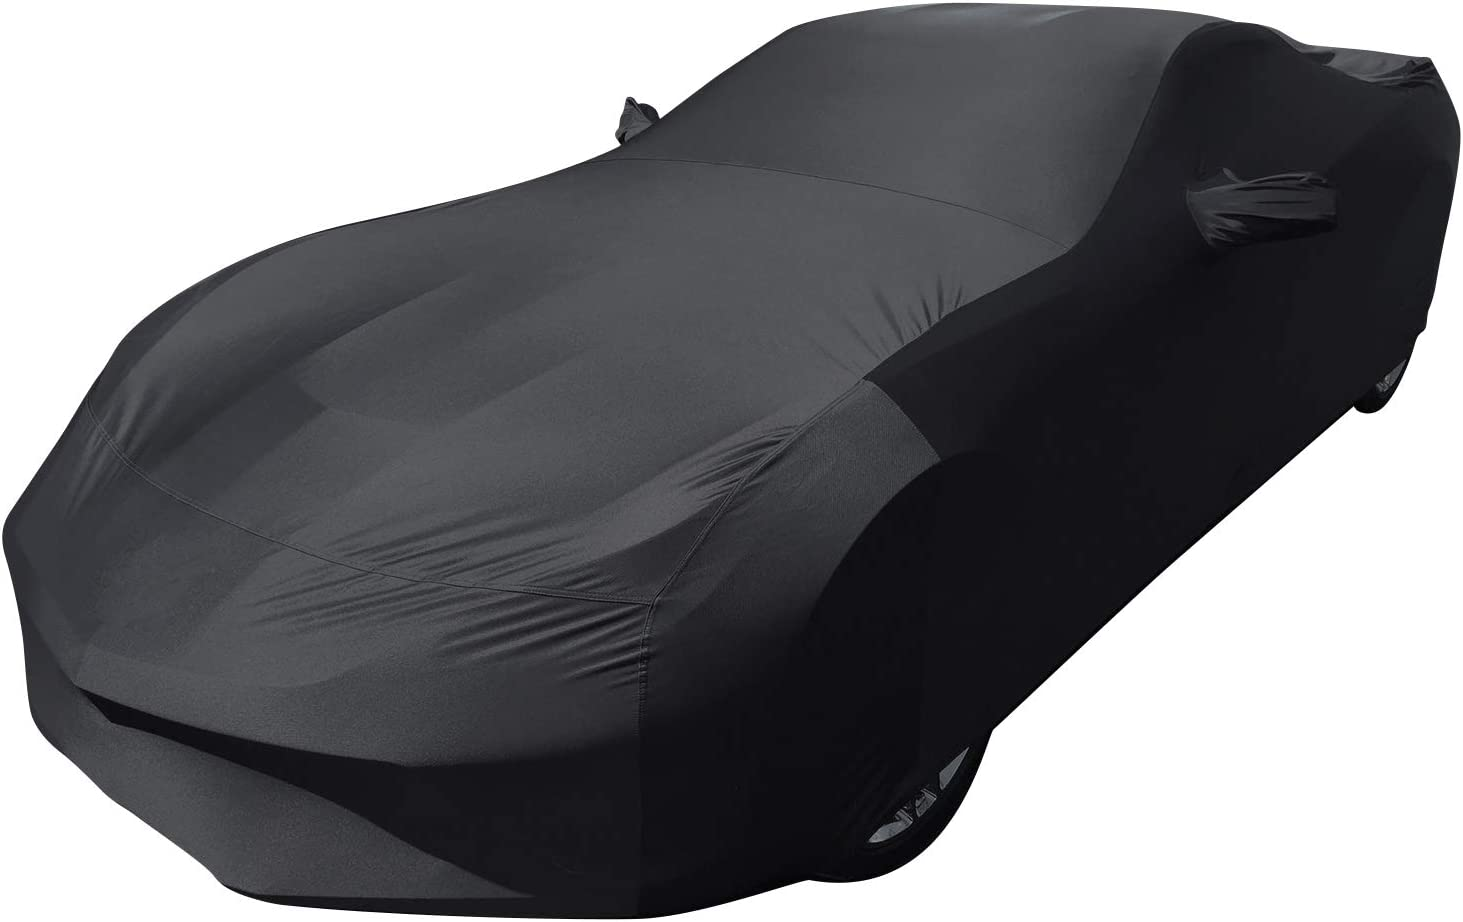 Car Cover Car Tarpaulin Compatible with Ford Mustang GT Full Garage Tarpaulin Waterproof Sun Protection Dustproof Windproof Rain Cover All-Weather Car Cover Color : Black